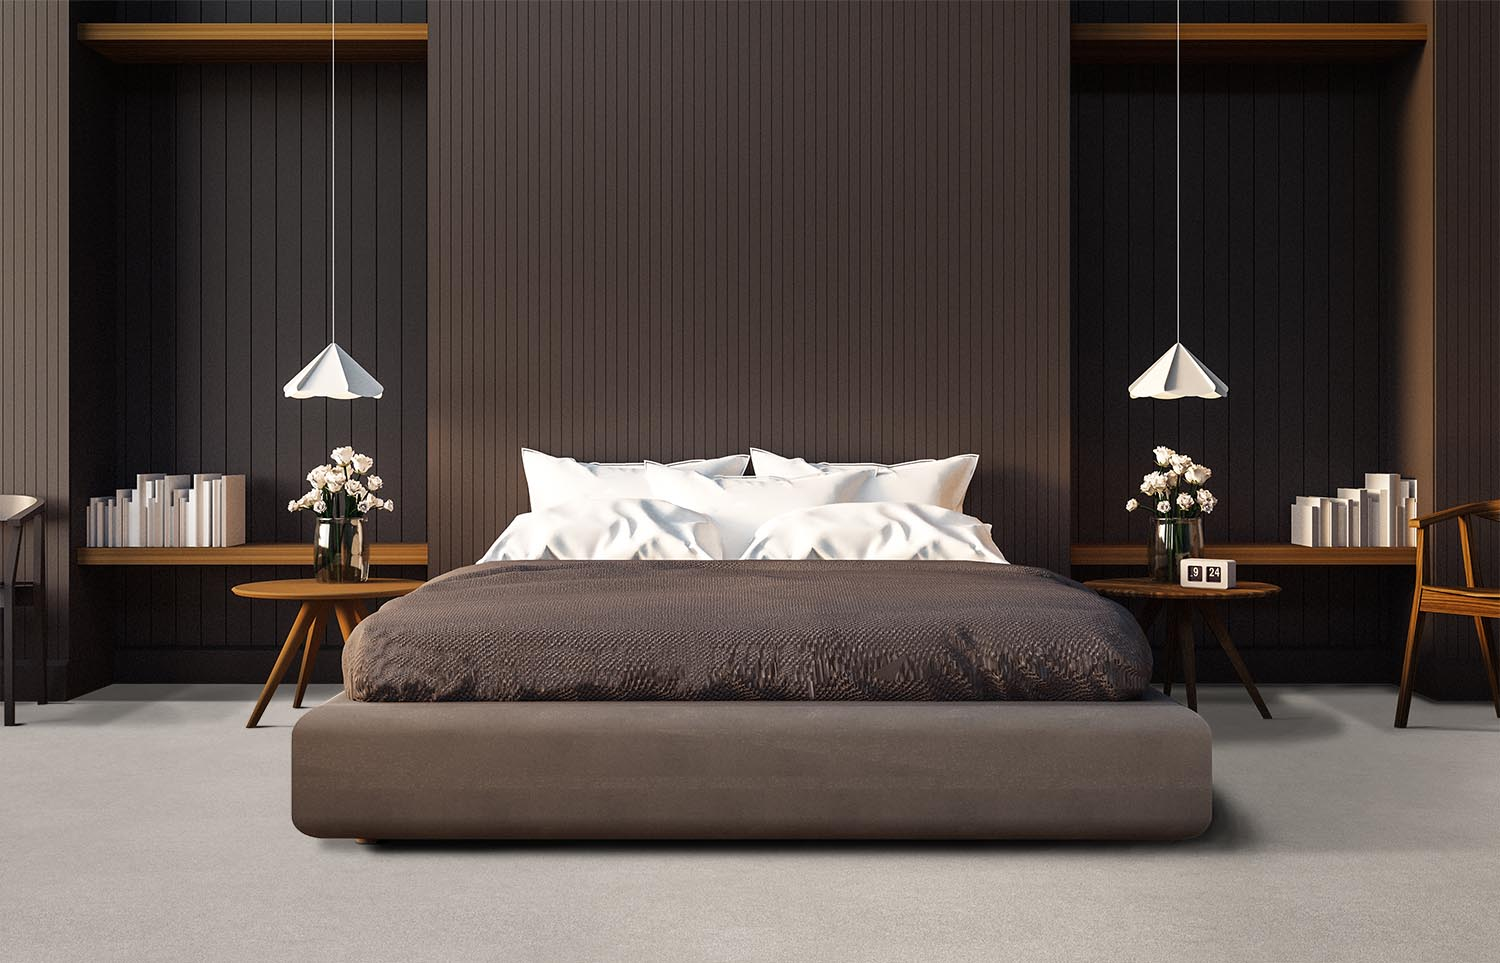 Softology - S201 - Zephyr contemporary bedroom